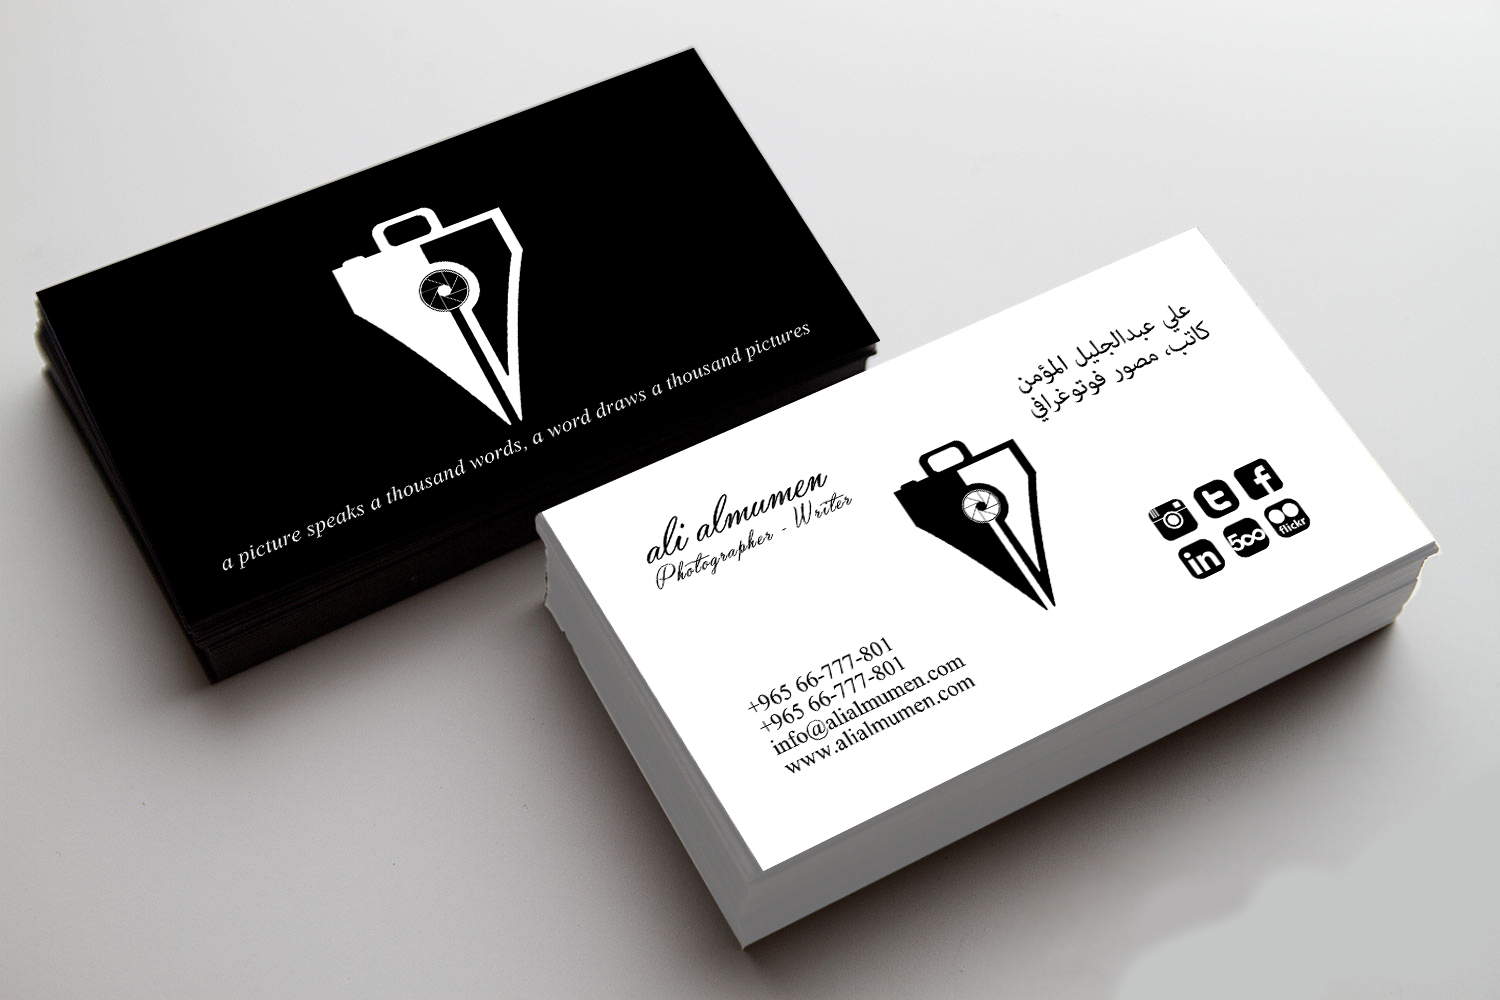 Print business cards kuwait gallery card design and card template business cards printing kuwait choice image card design and card elegant playful business business card design reheart Image collections